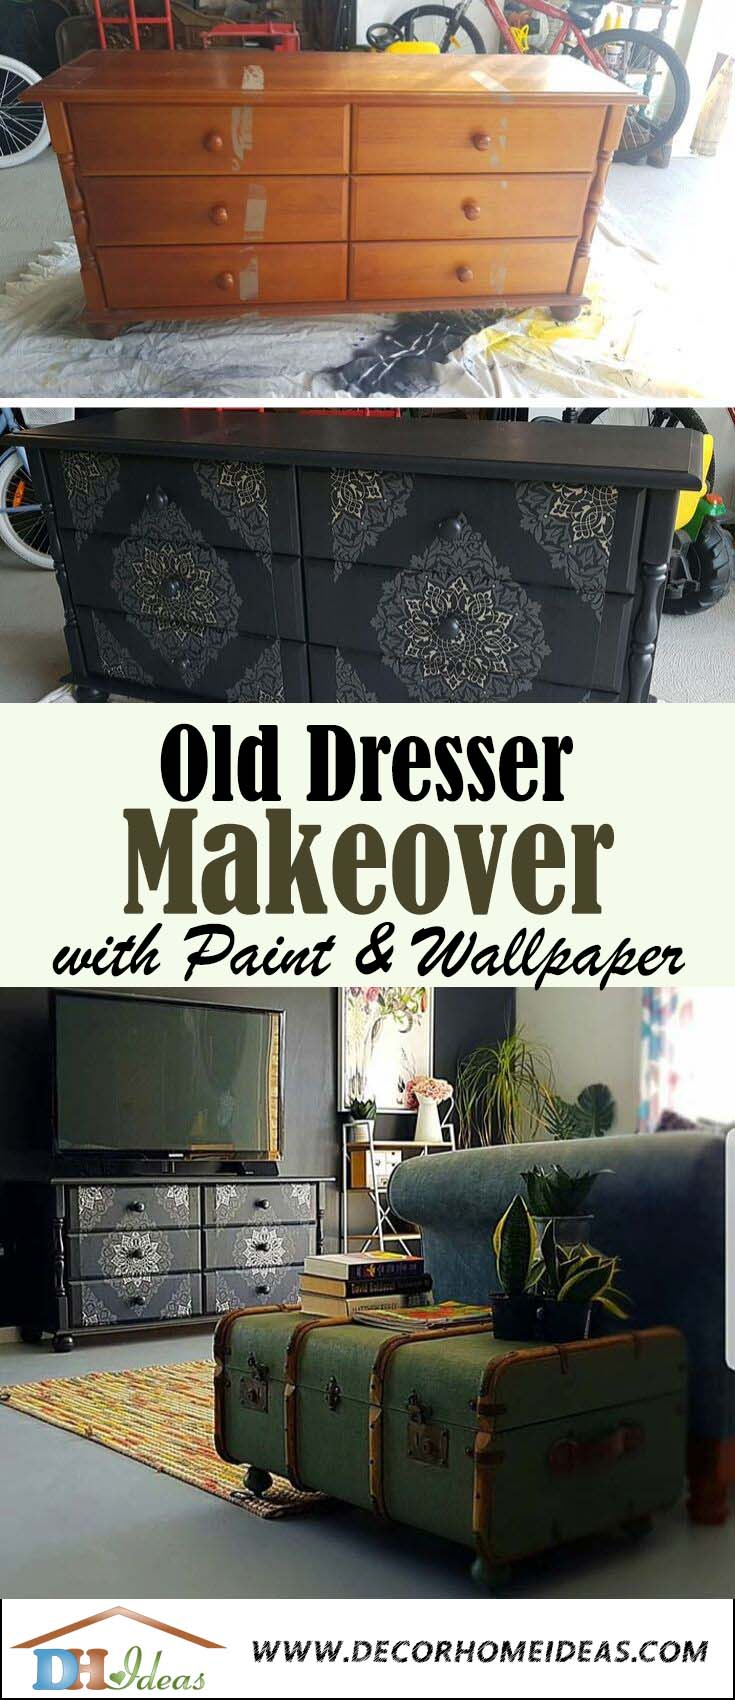 Dresser Makeover With Wallpaper and Water Based Paint. #dresser #makeover #decorhomeideas